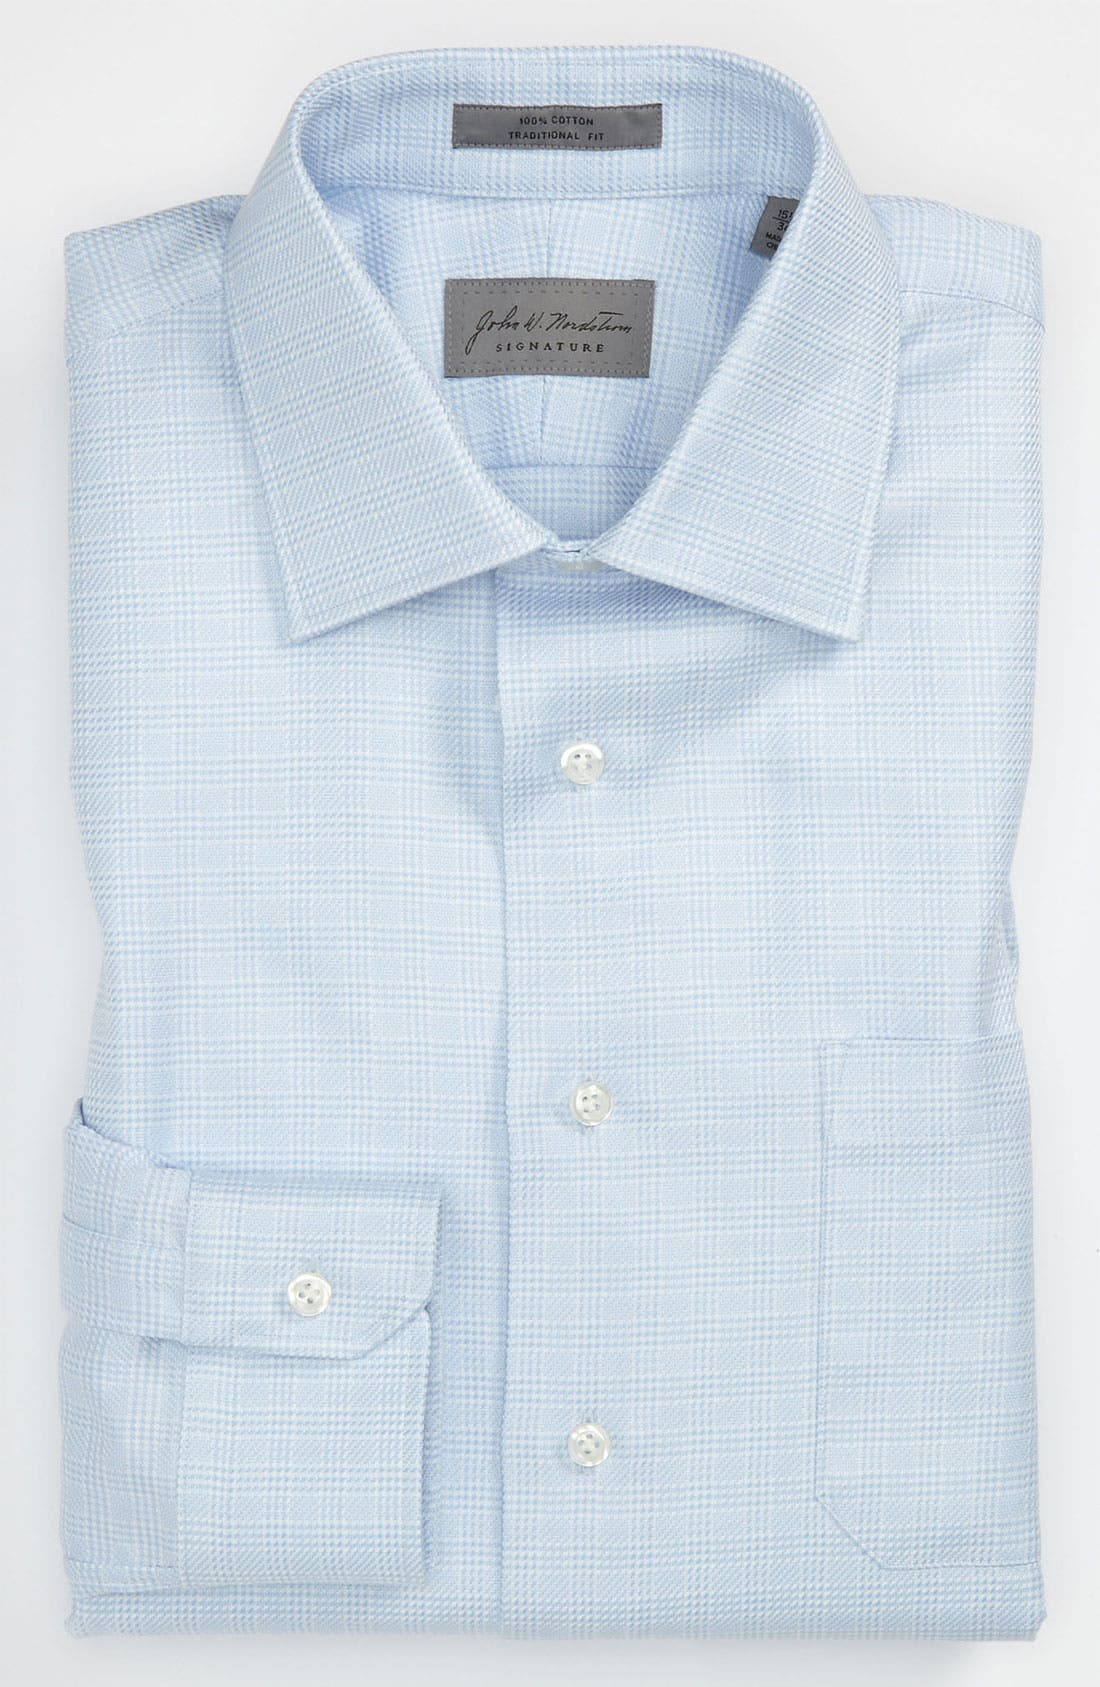 Alternate Image 1 Selected - John W. Nordstrom® Signature Traditional Fit Dress Shirt